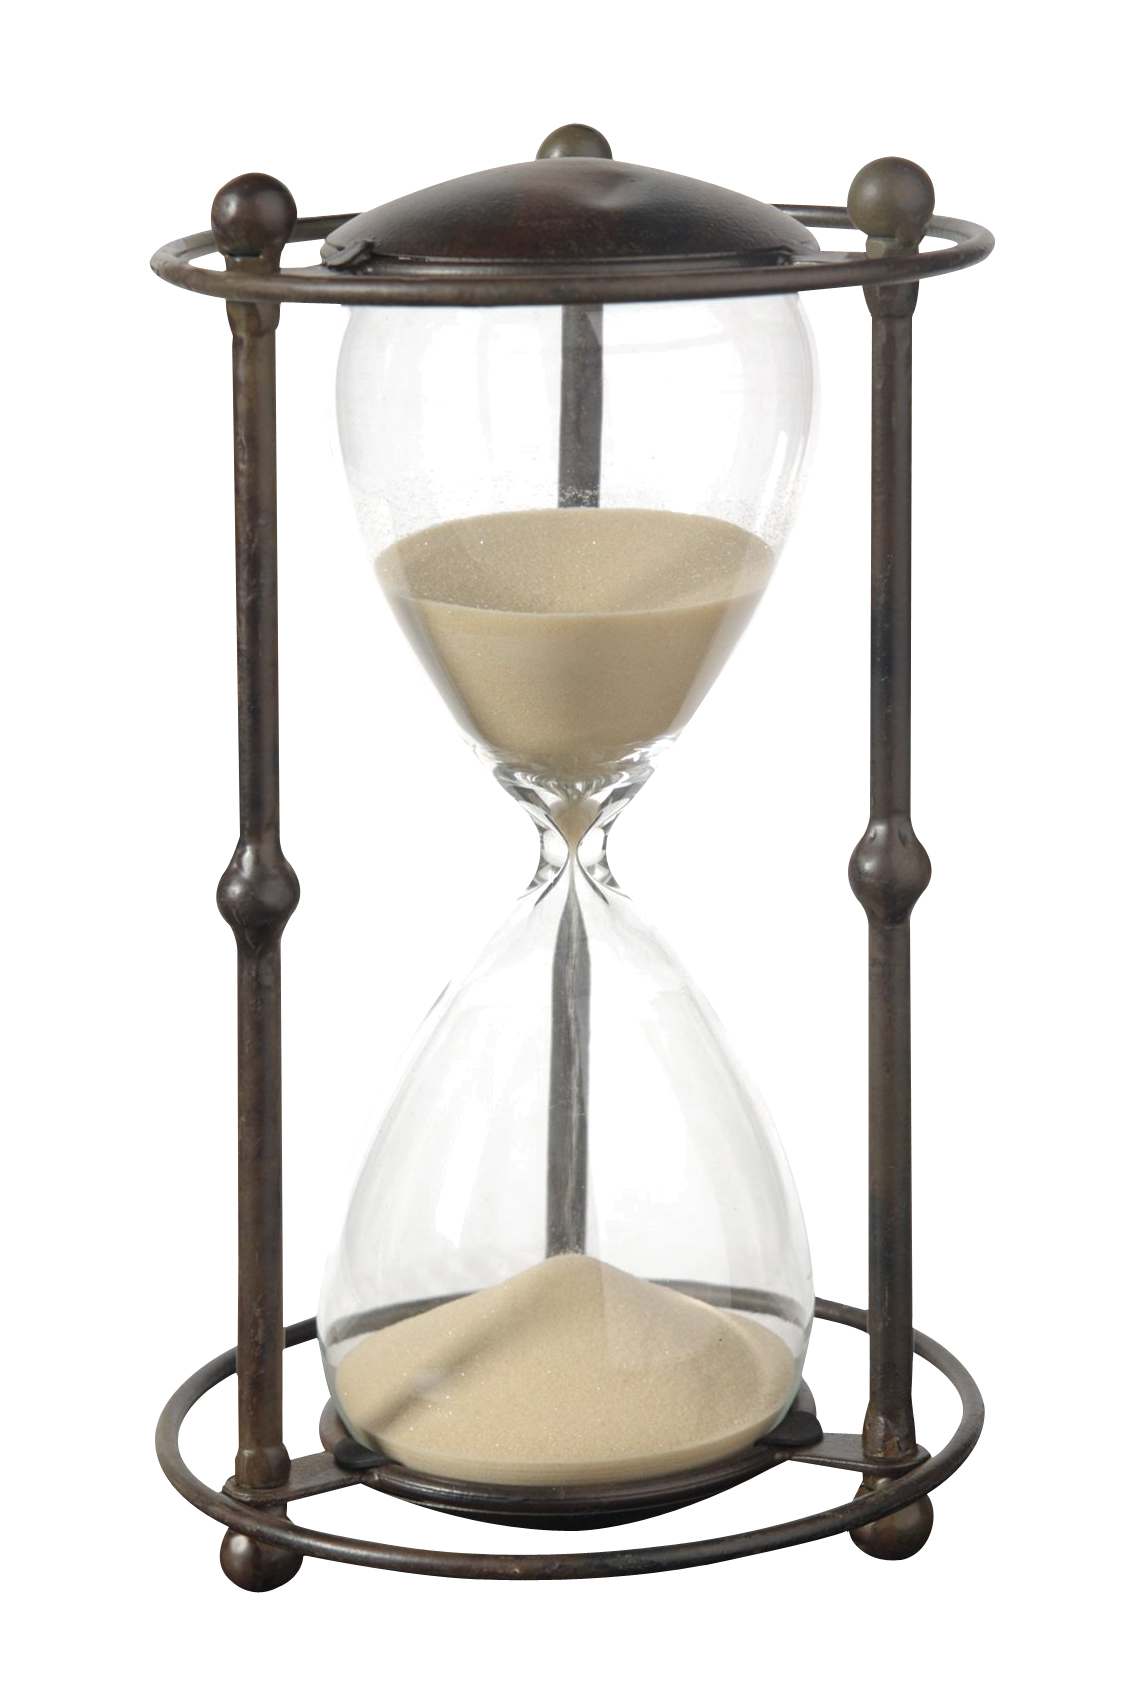 Png image purepng free. Hourglass clipart old